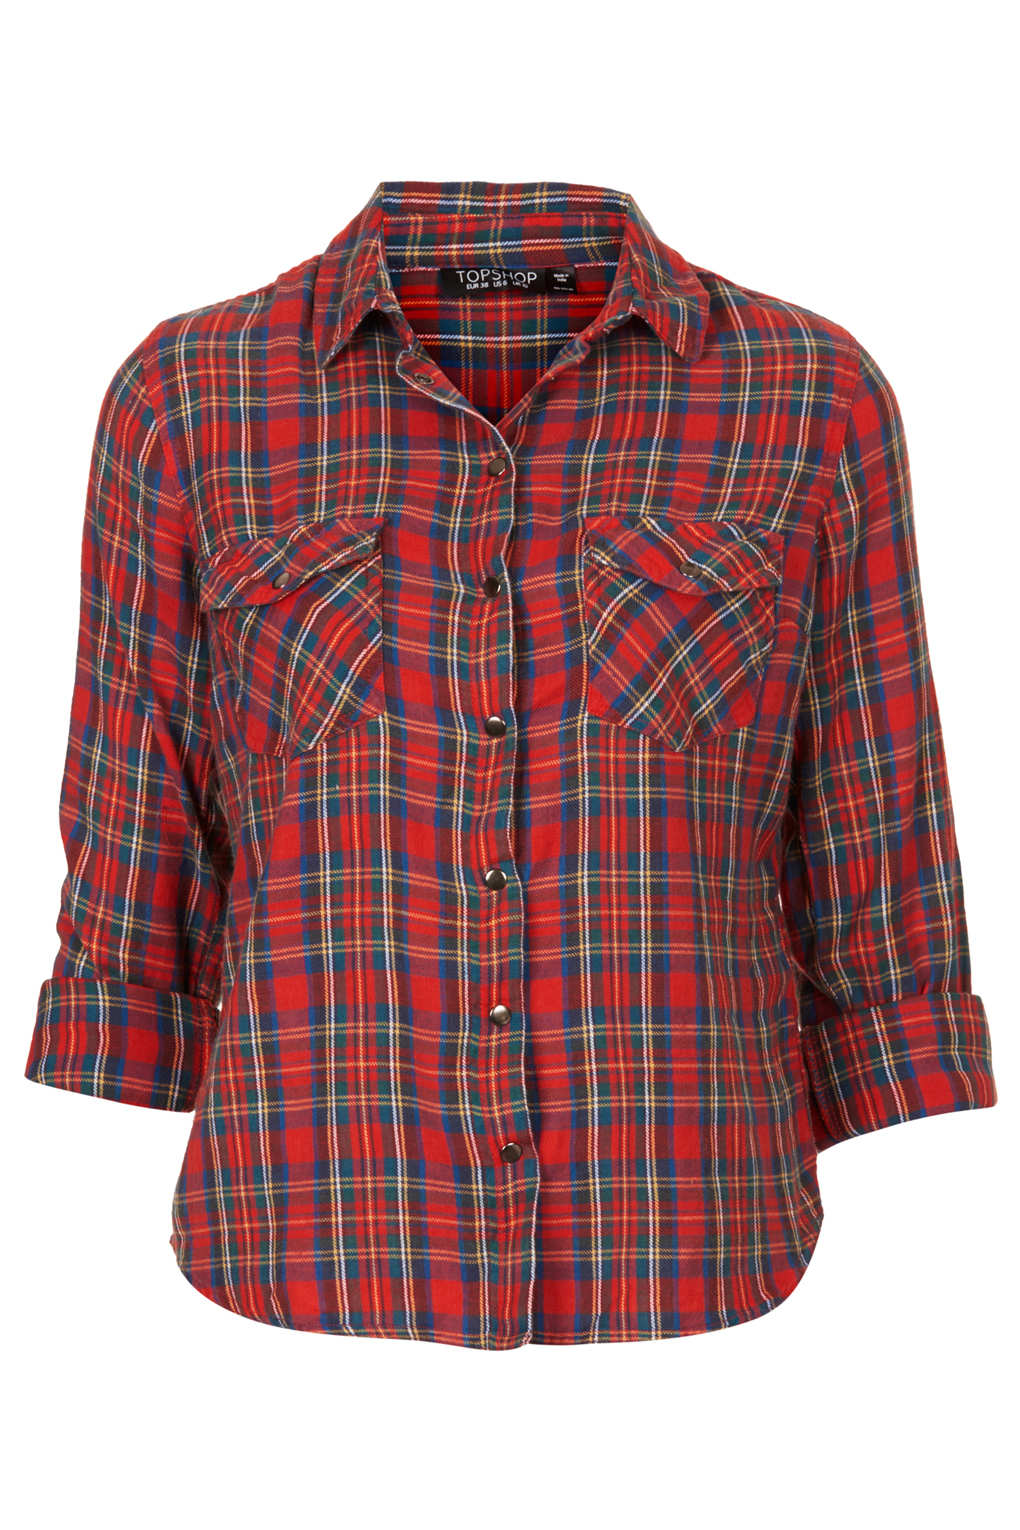 Lyst Topshop Tartan Check Shirt In Red